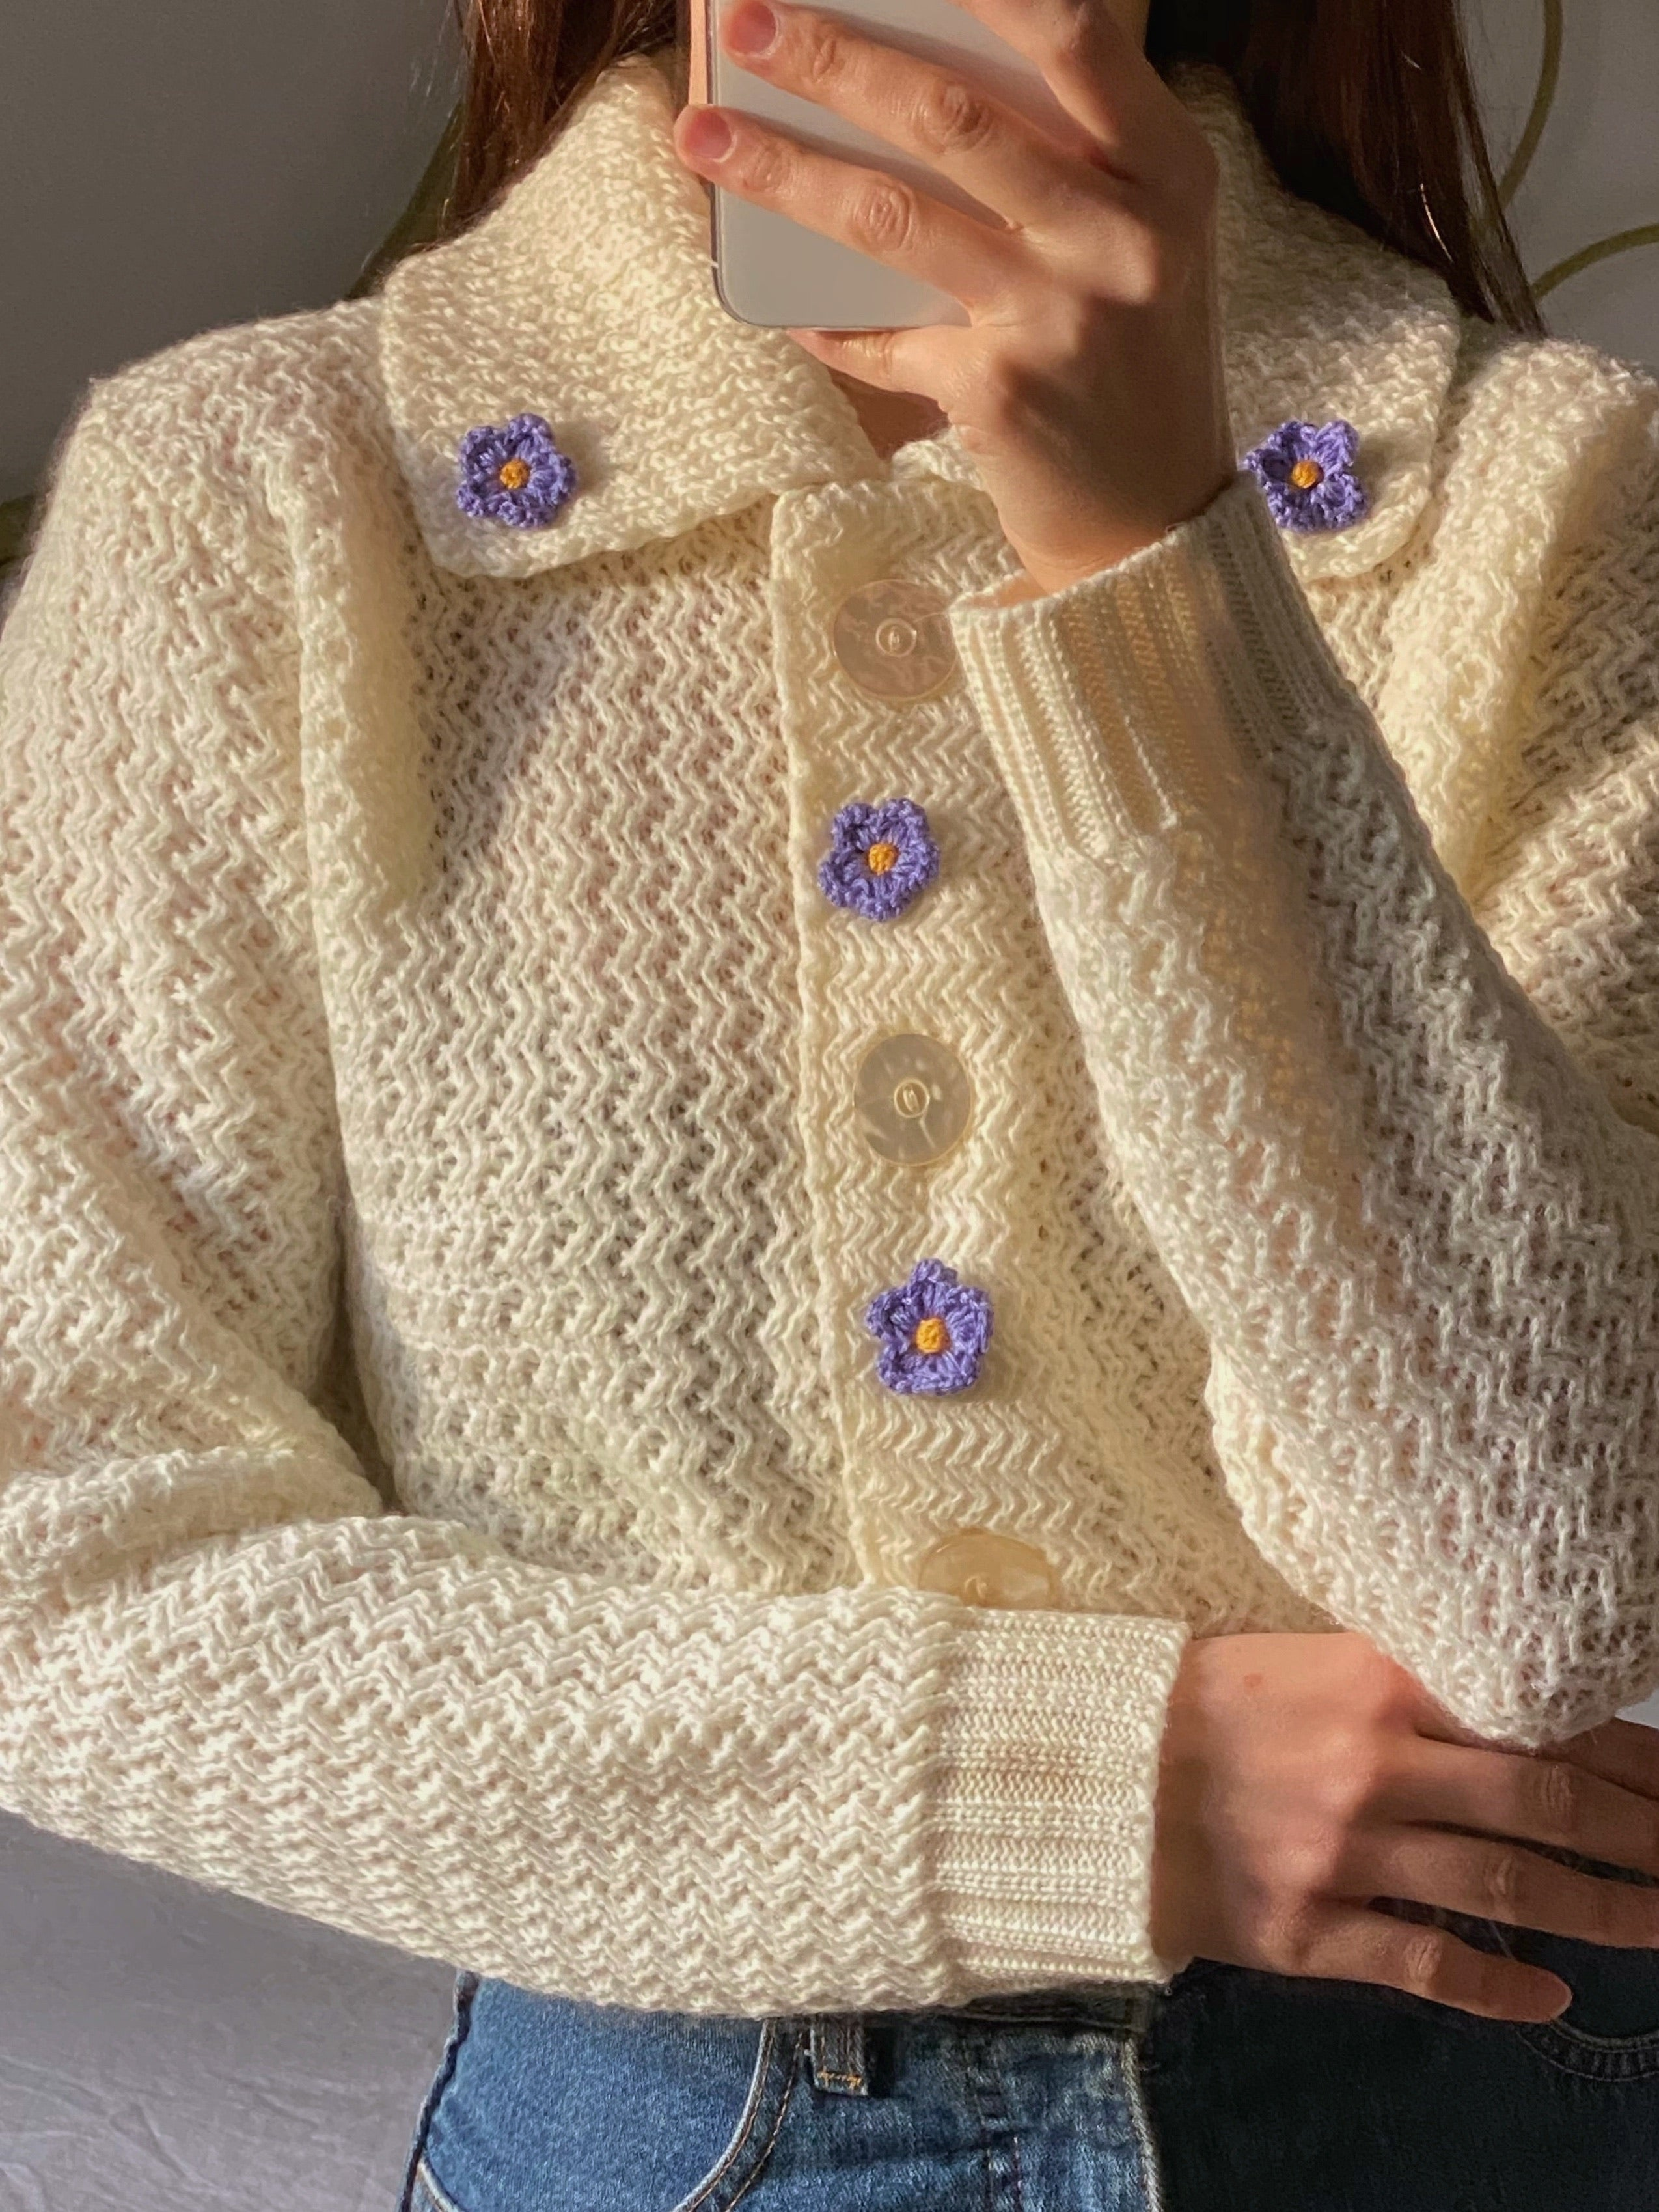 Vintage Scottish pure wool flowers appliquè knitted cardigan